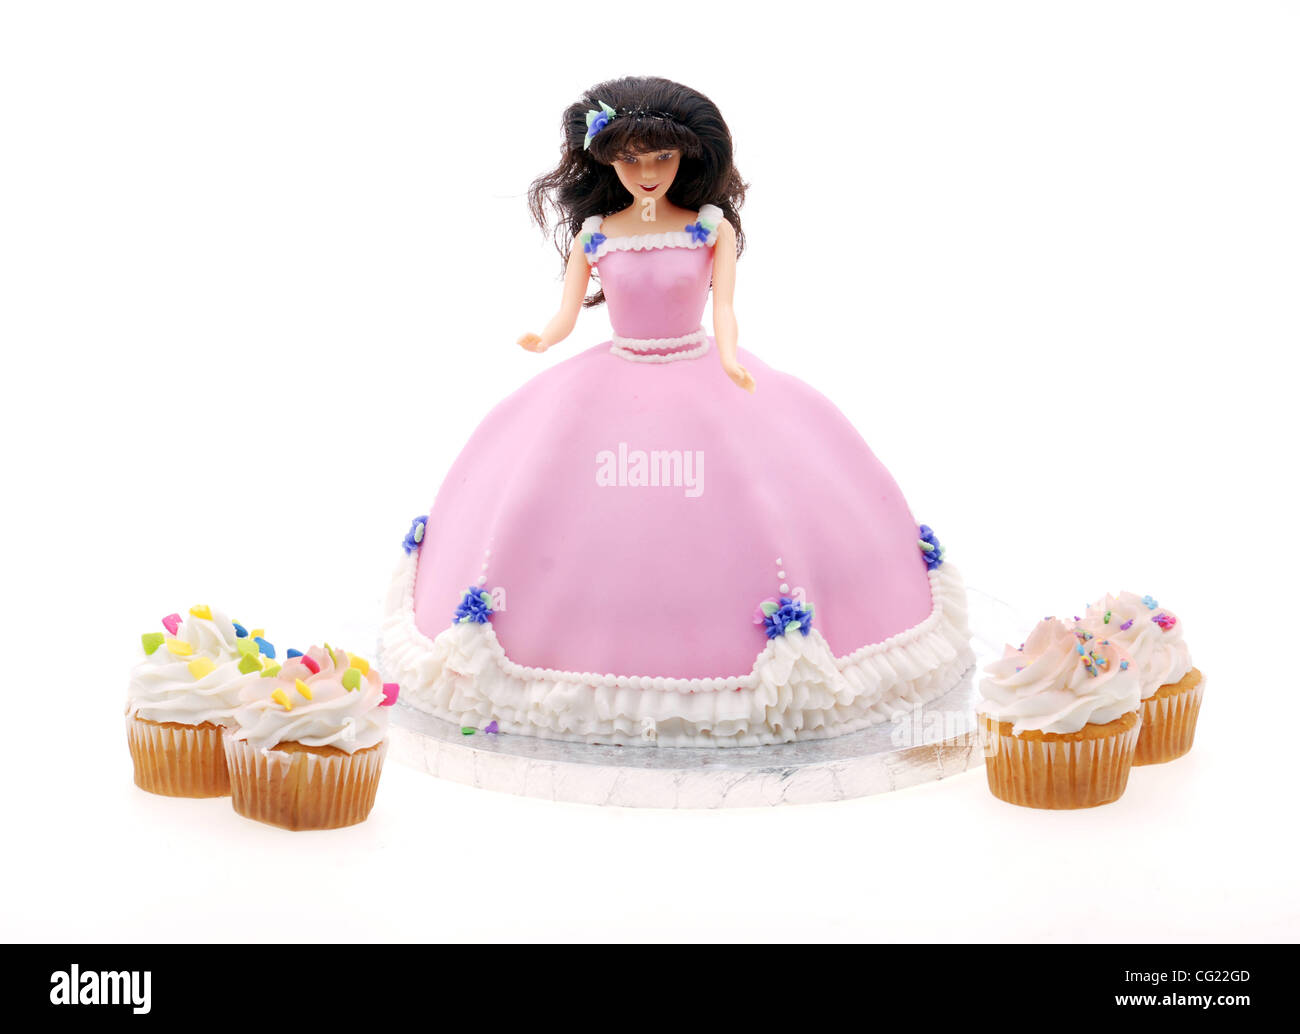 Tremendous A Birthday Cake In The Shape Of A Doll July 20 2007 Sacramento Funny Birthday Cards Online Aeocydamsfinfo